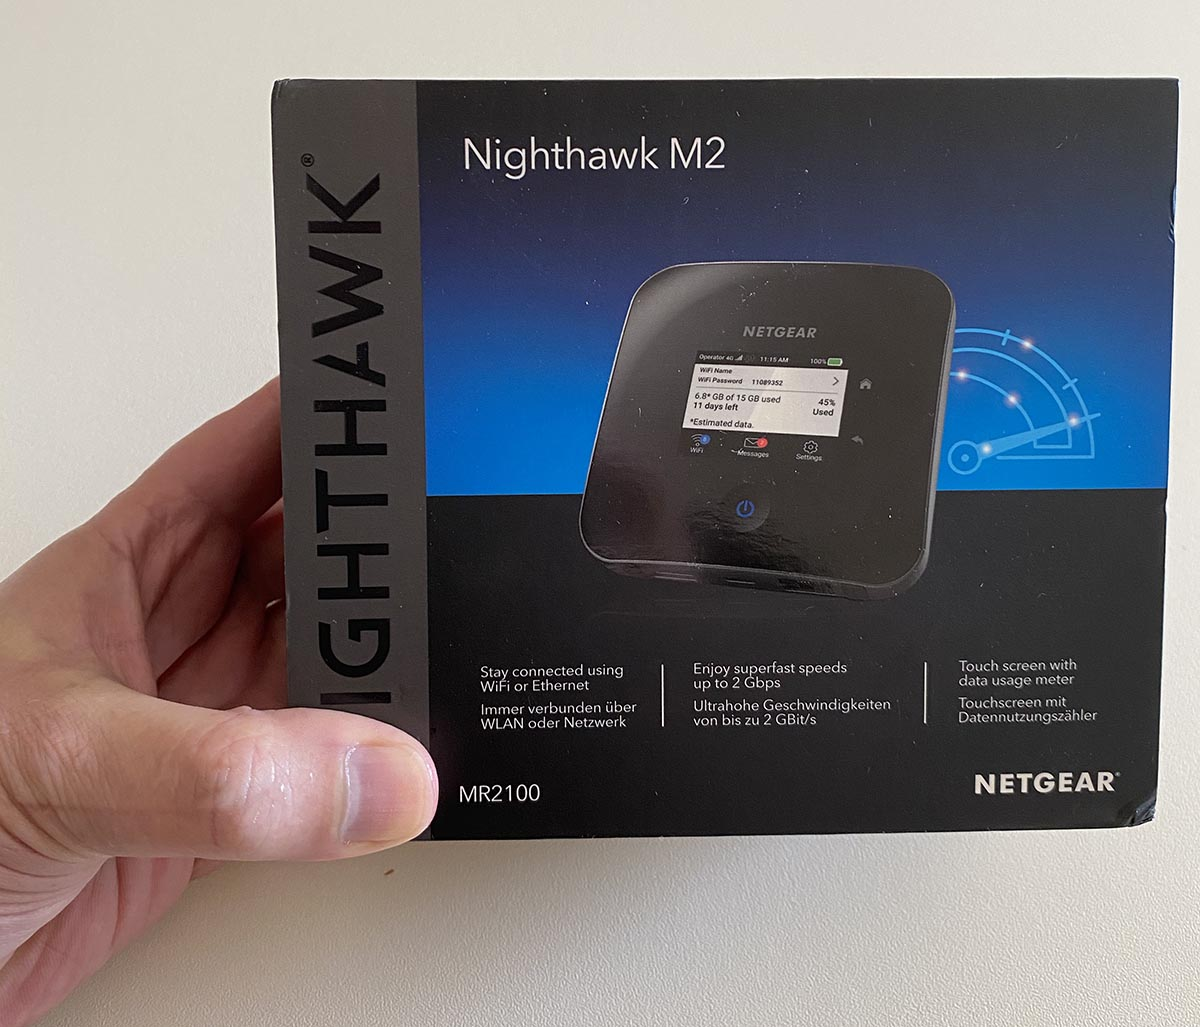 Netgear Nighthawk M2 review, mobile router with Gigabit LTE